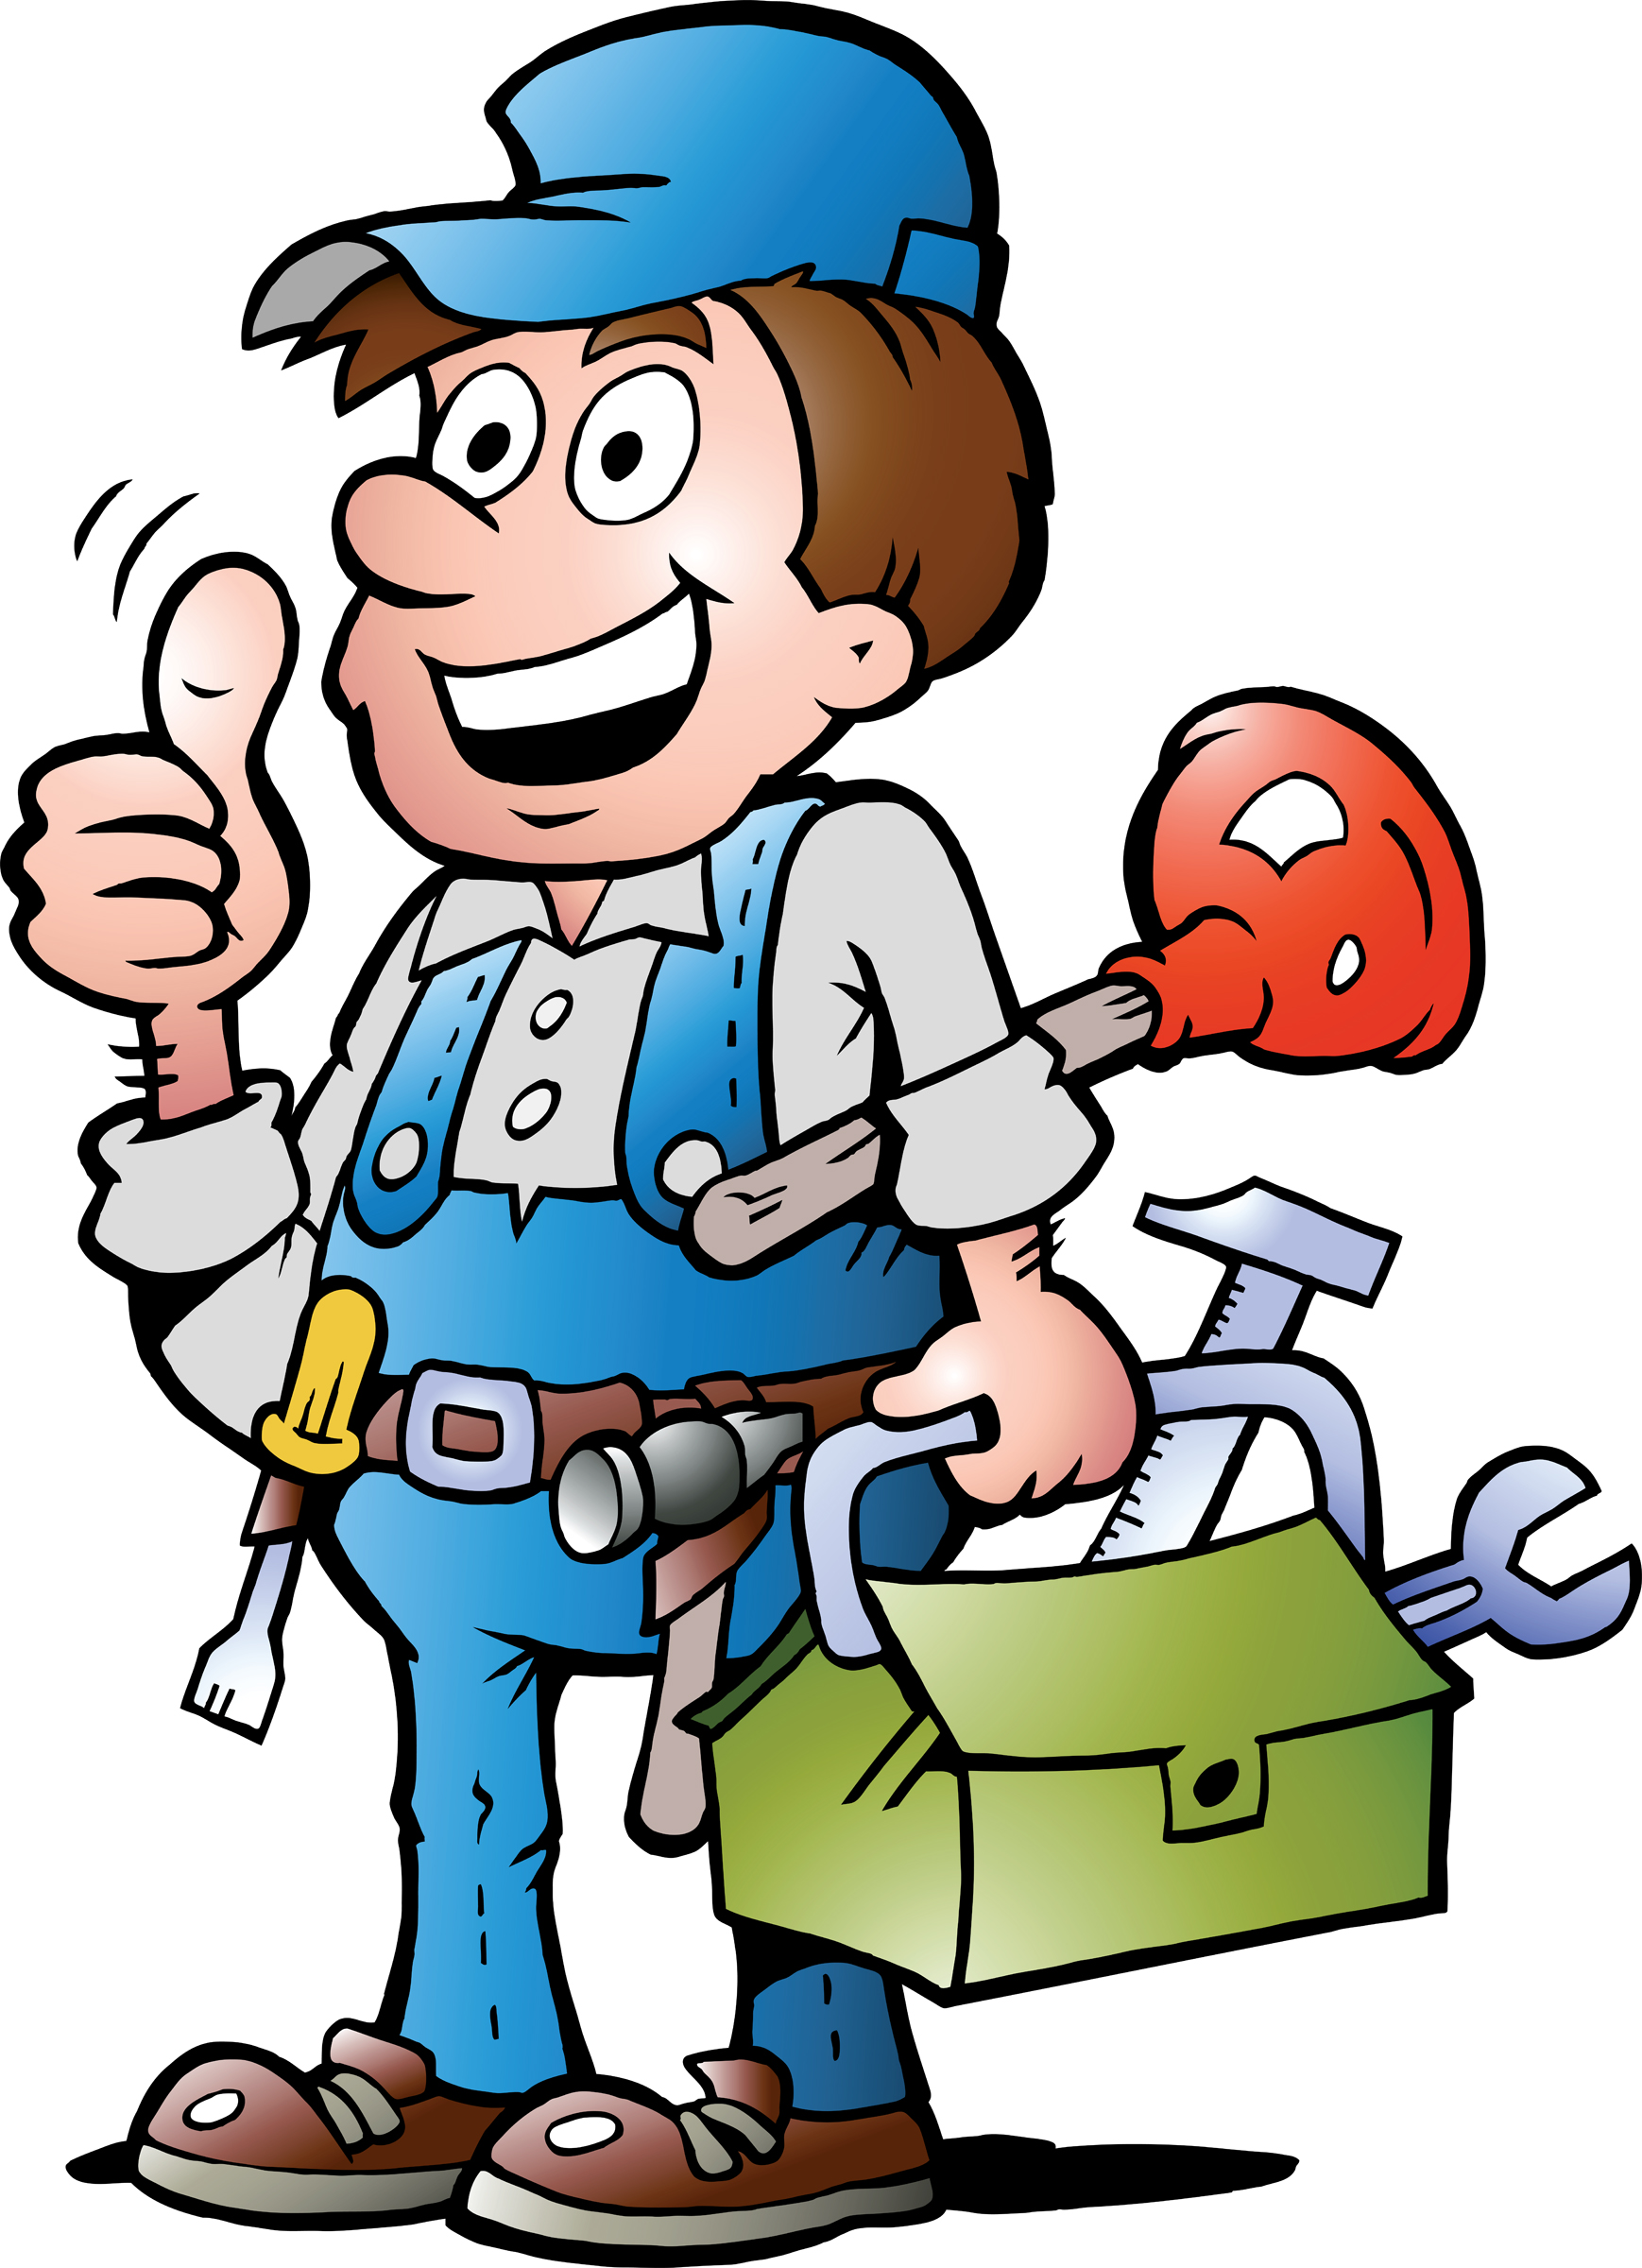 Clipart handyman services picture library download Free Handyman Cliparts, Download Free Clip Art, Free Clip Art on ... picture library download